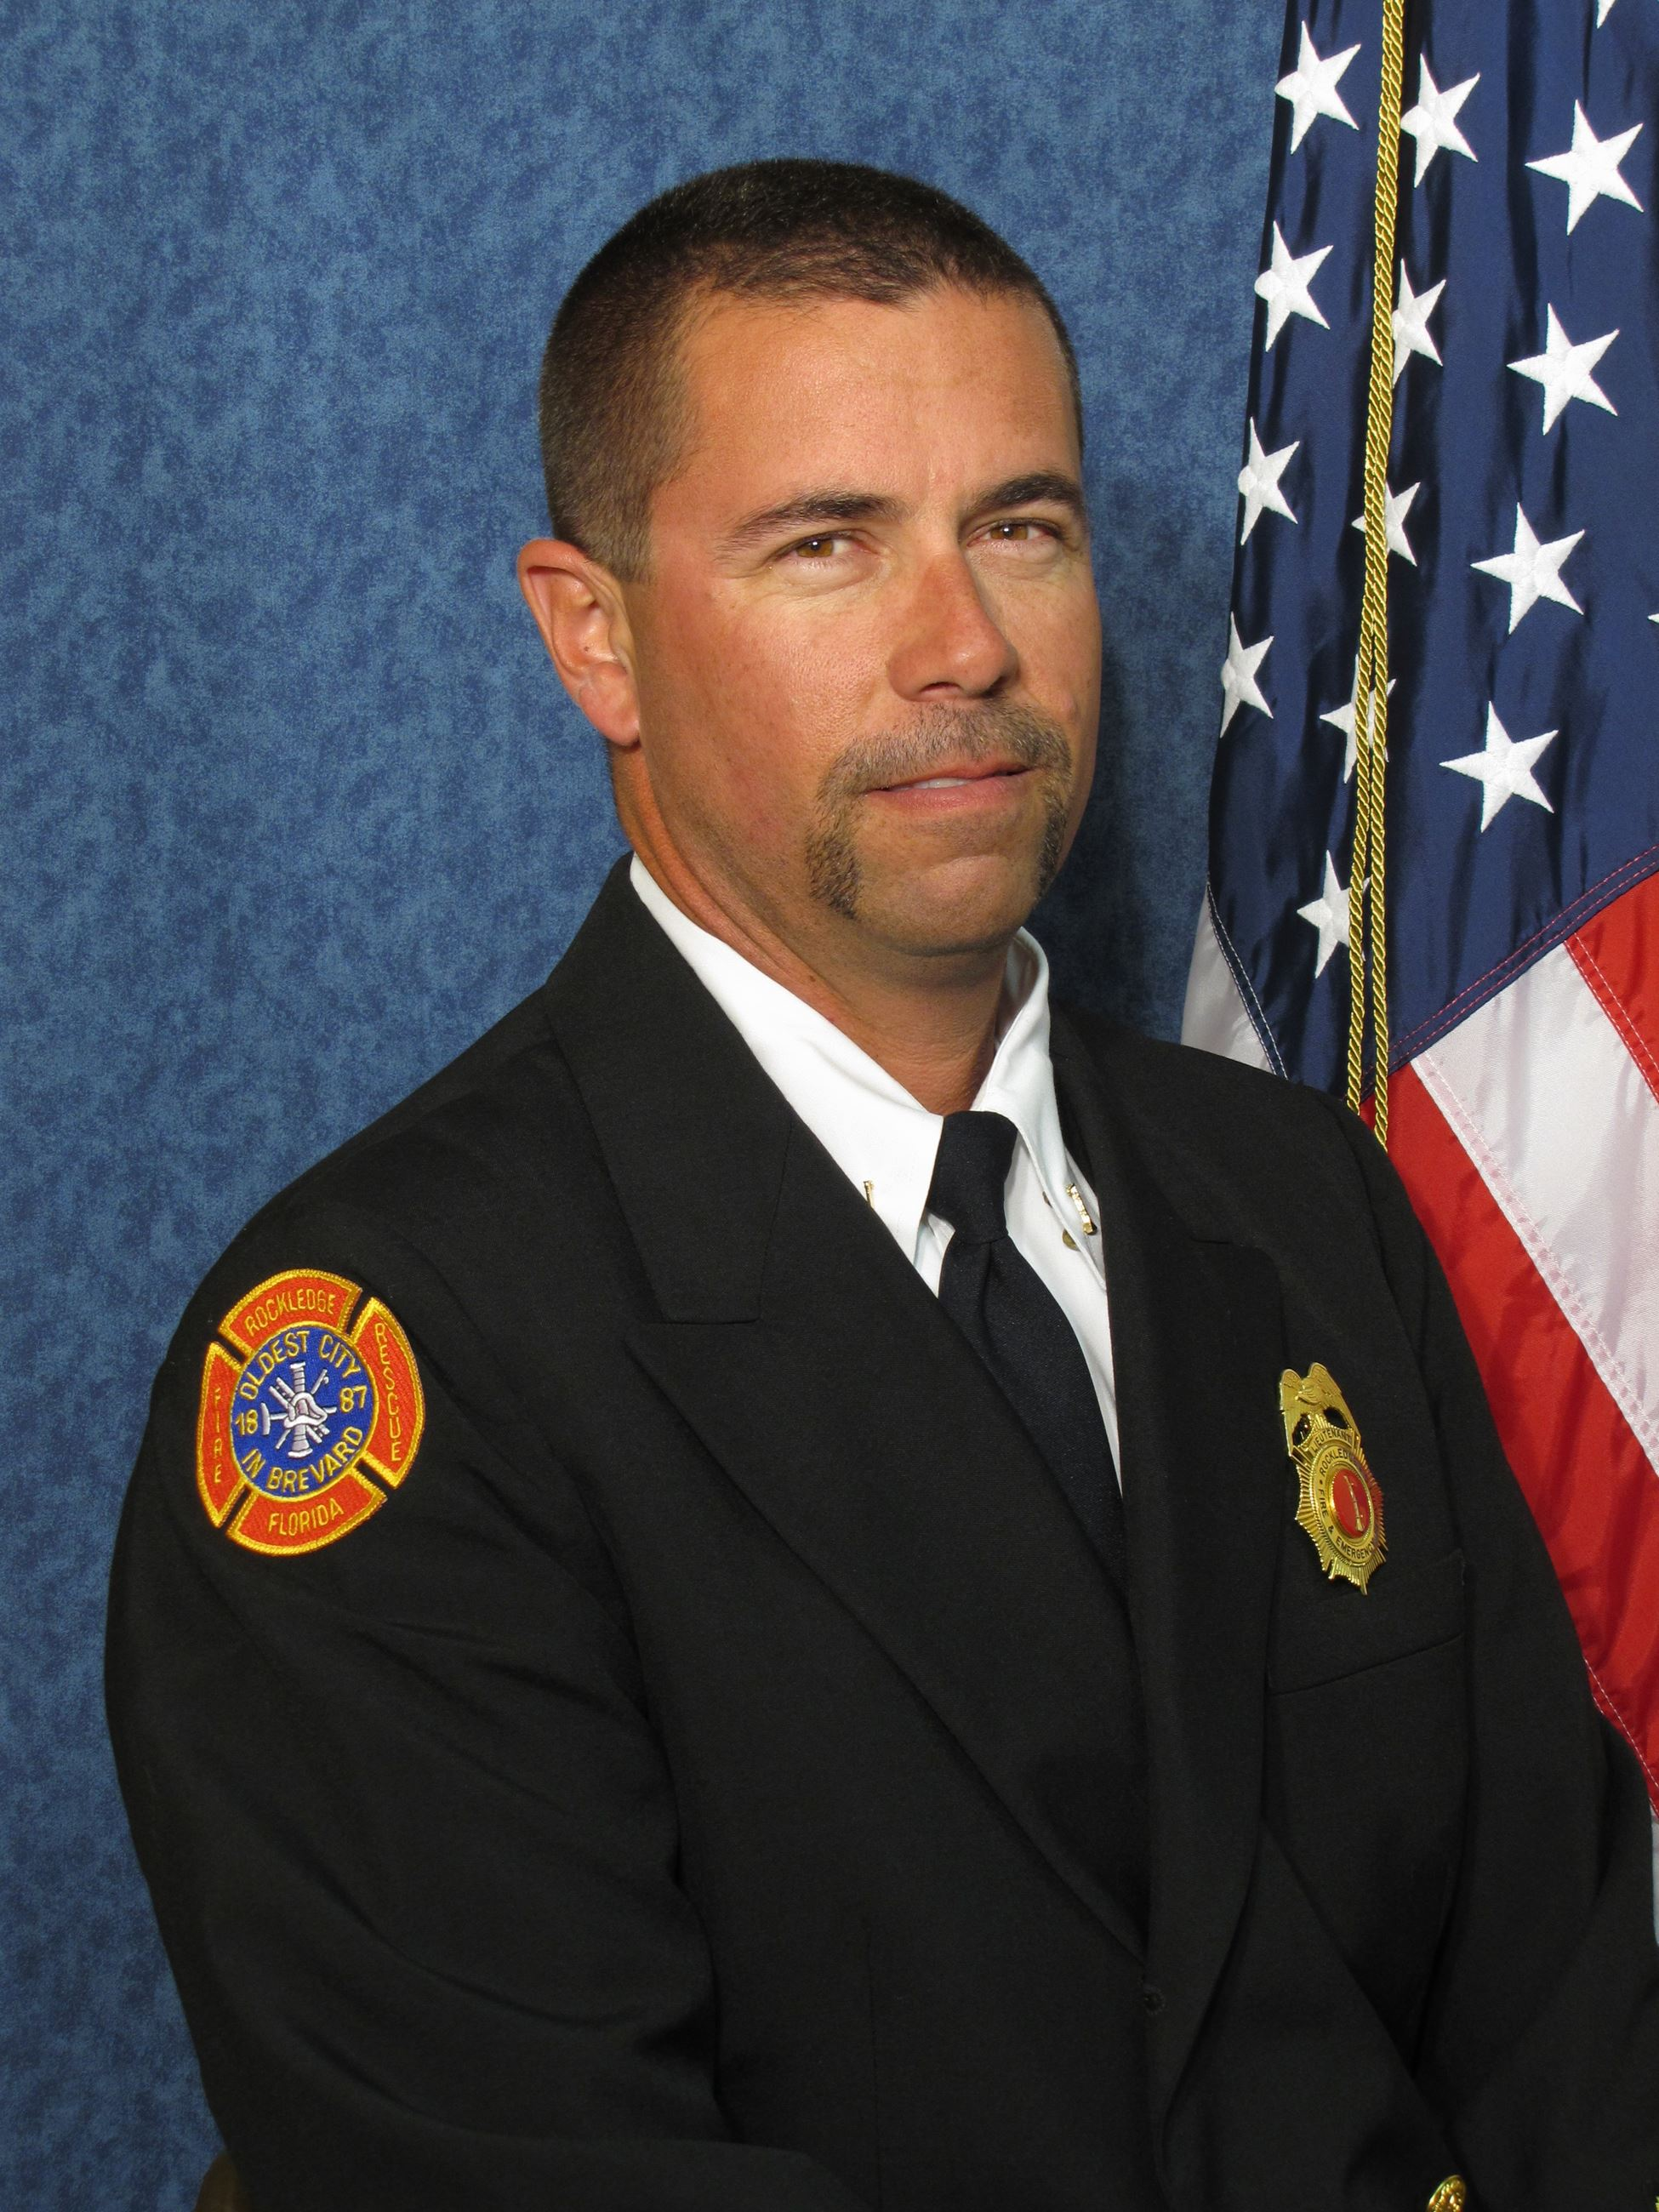 Chief Jim Russo